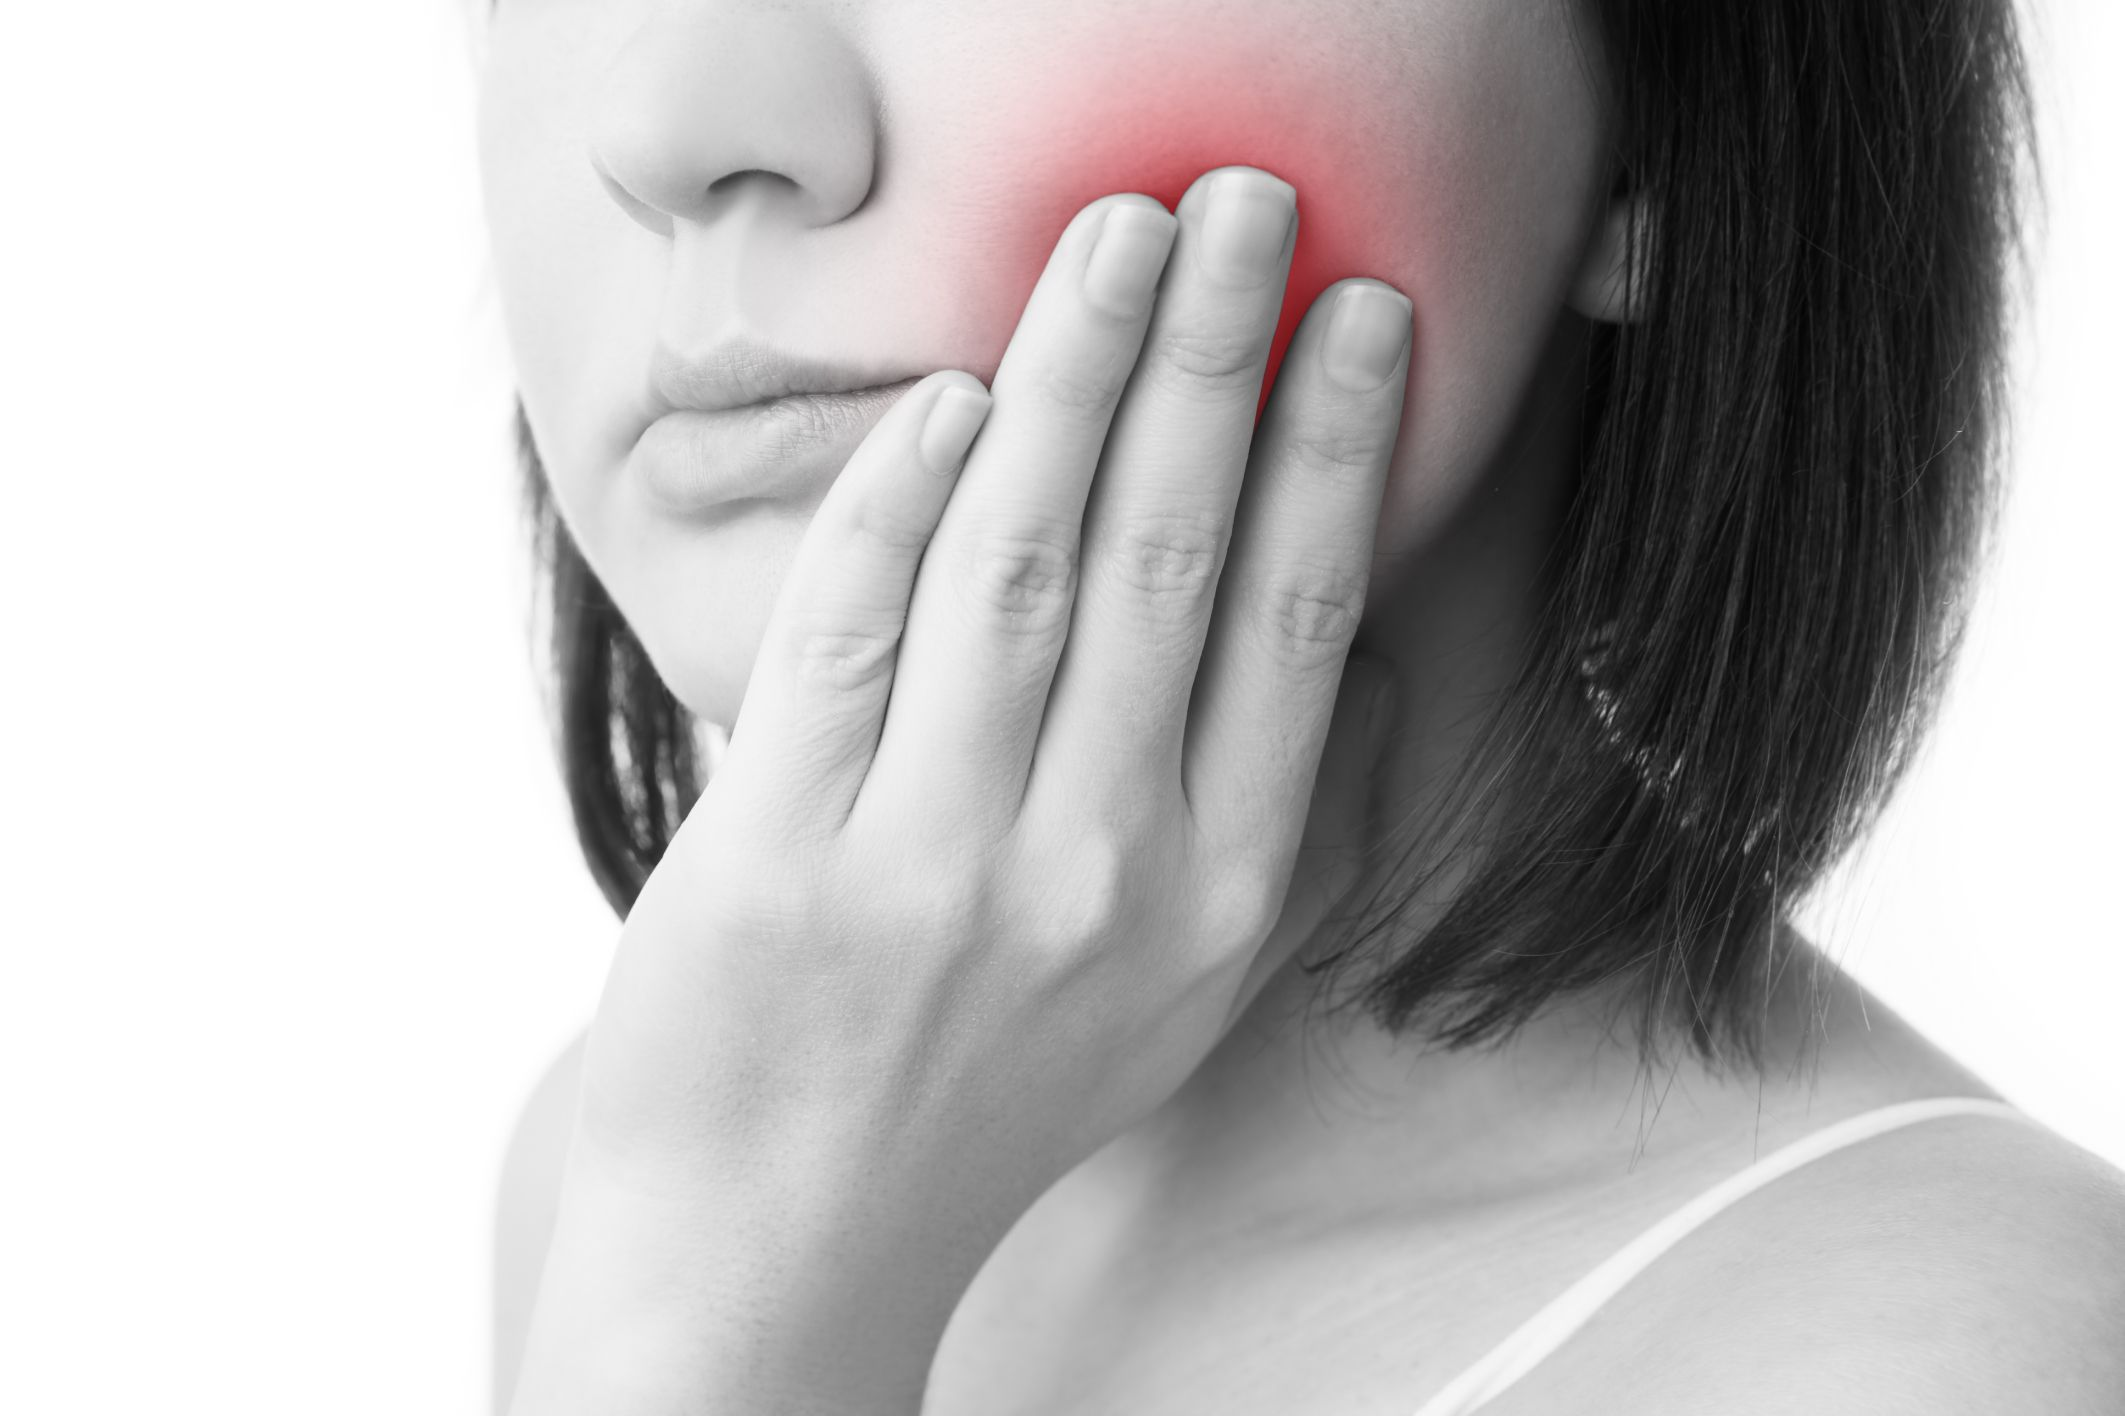 #Rootcanals don't cause pain, they relieve it!